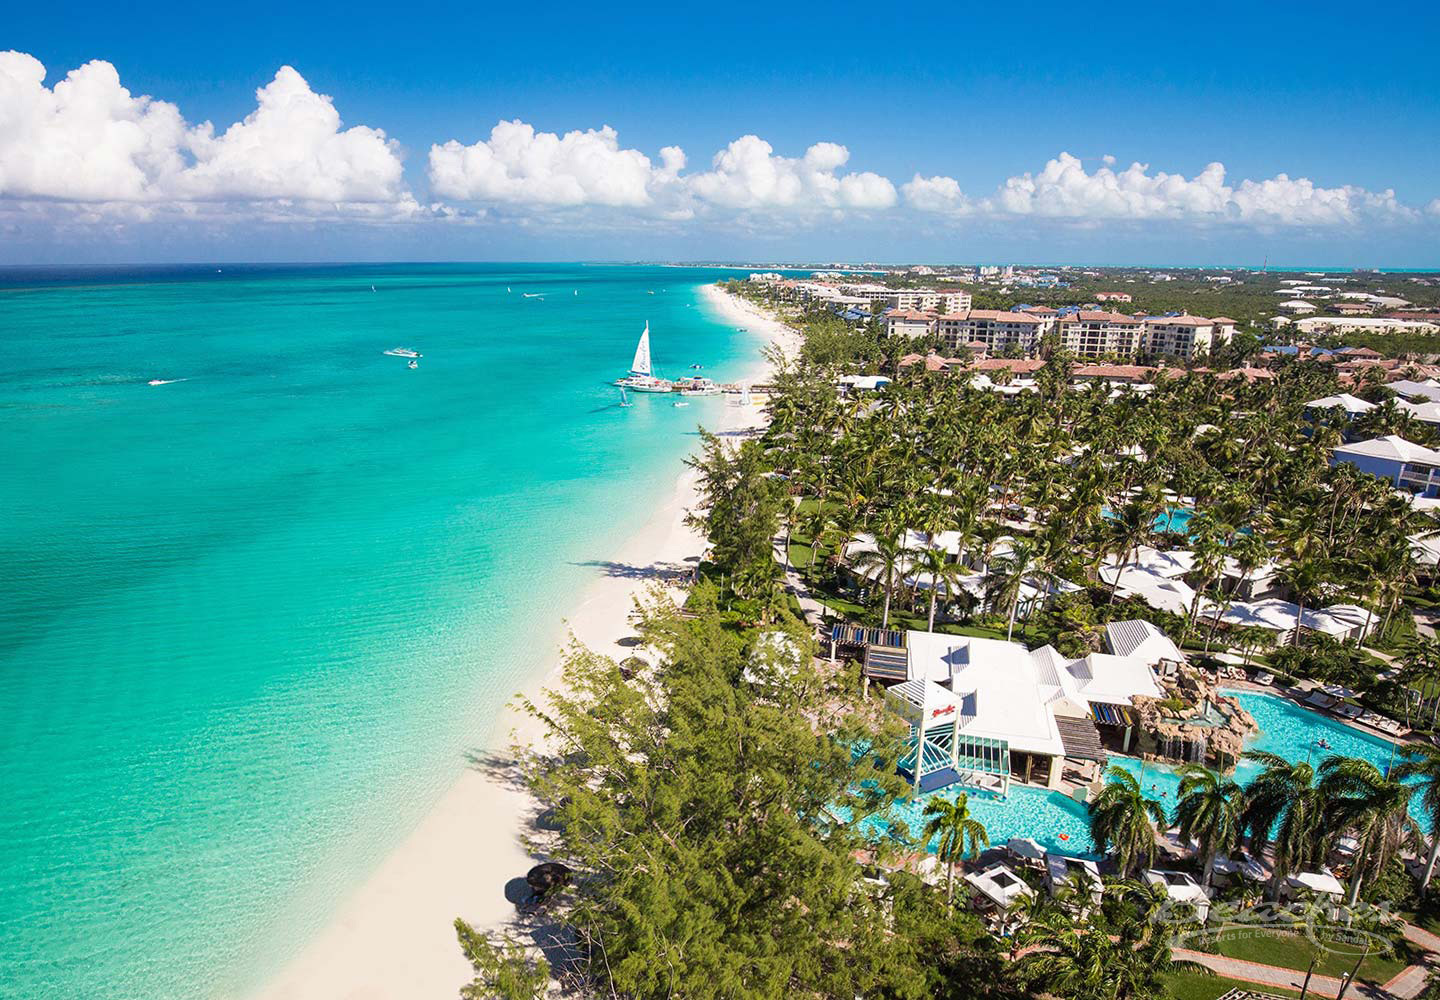 Travel Agency All-Inclusive Resort Beaches Turks and Caicos 150